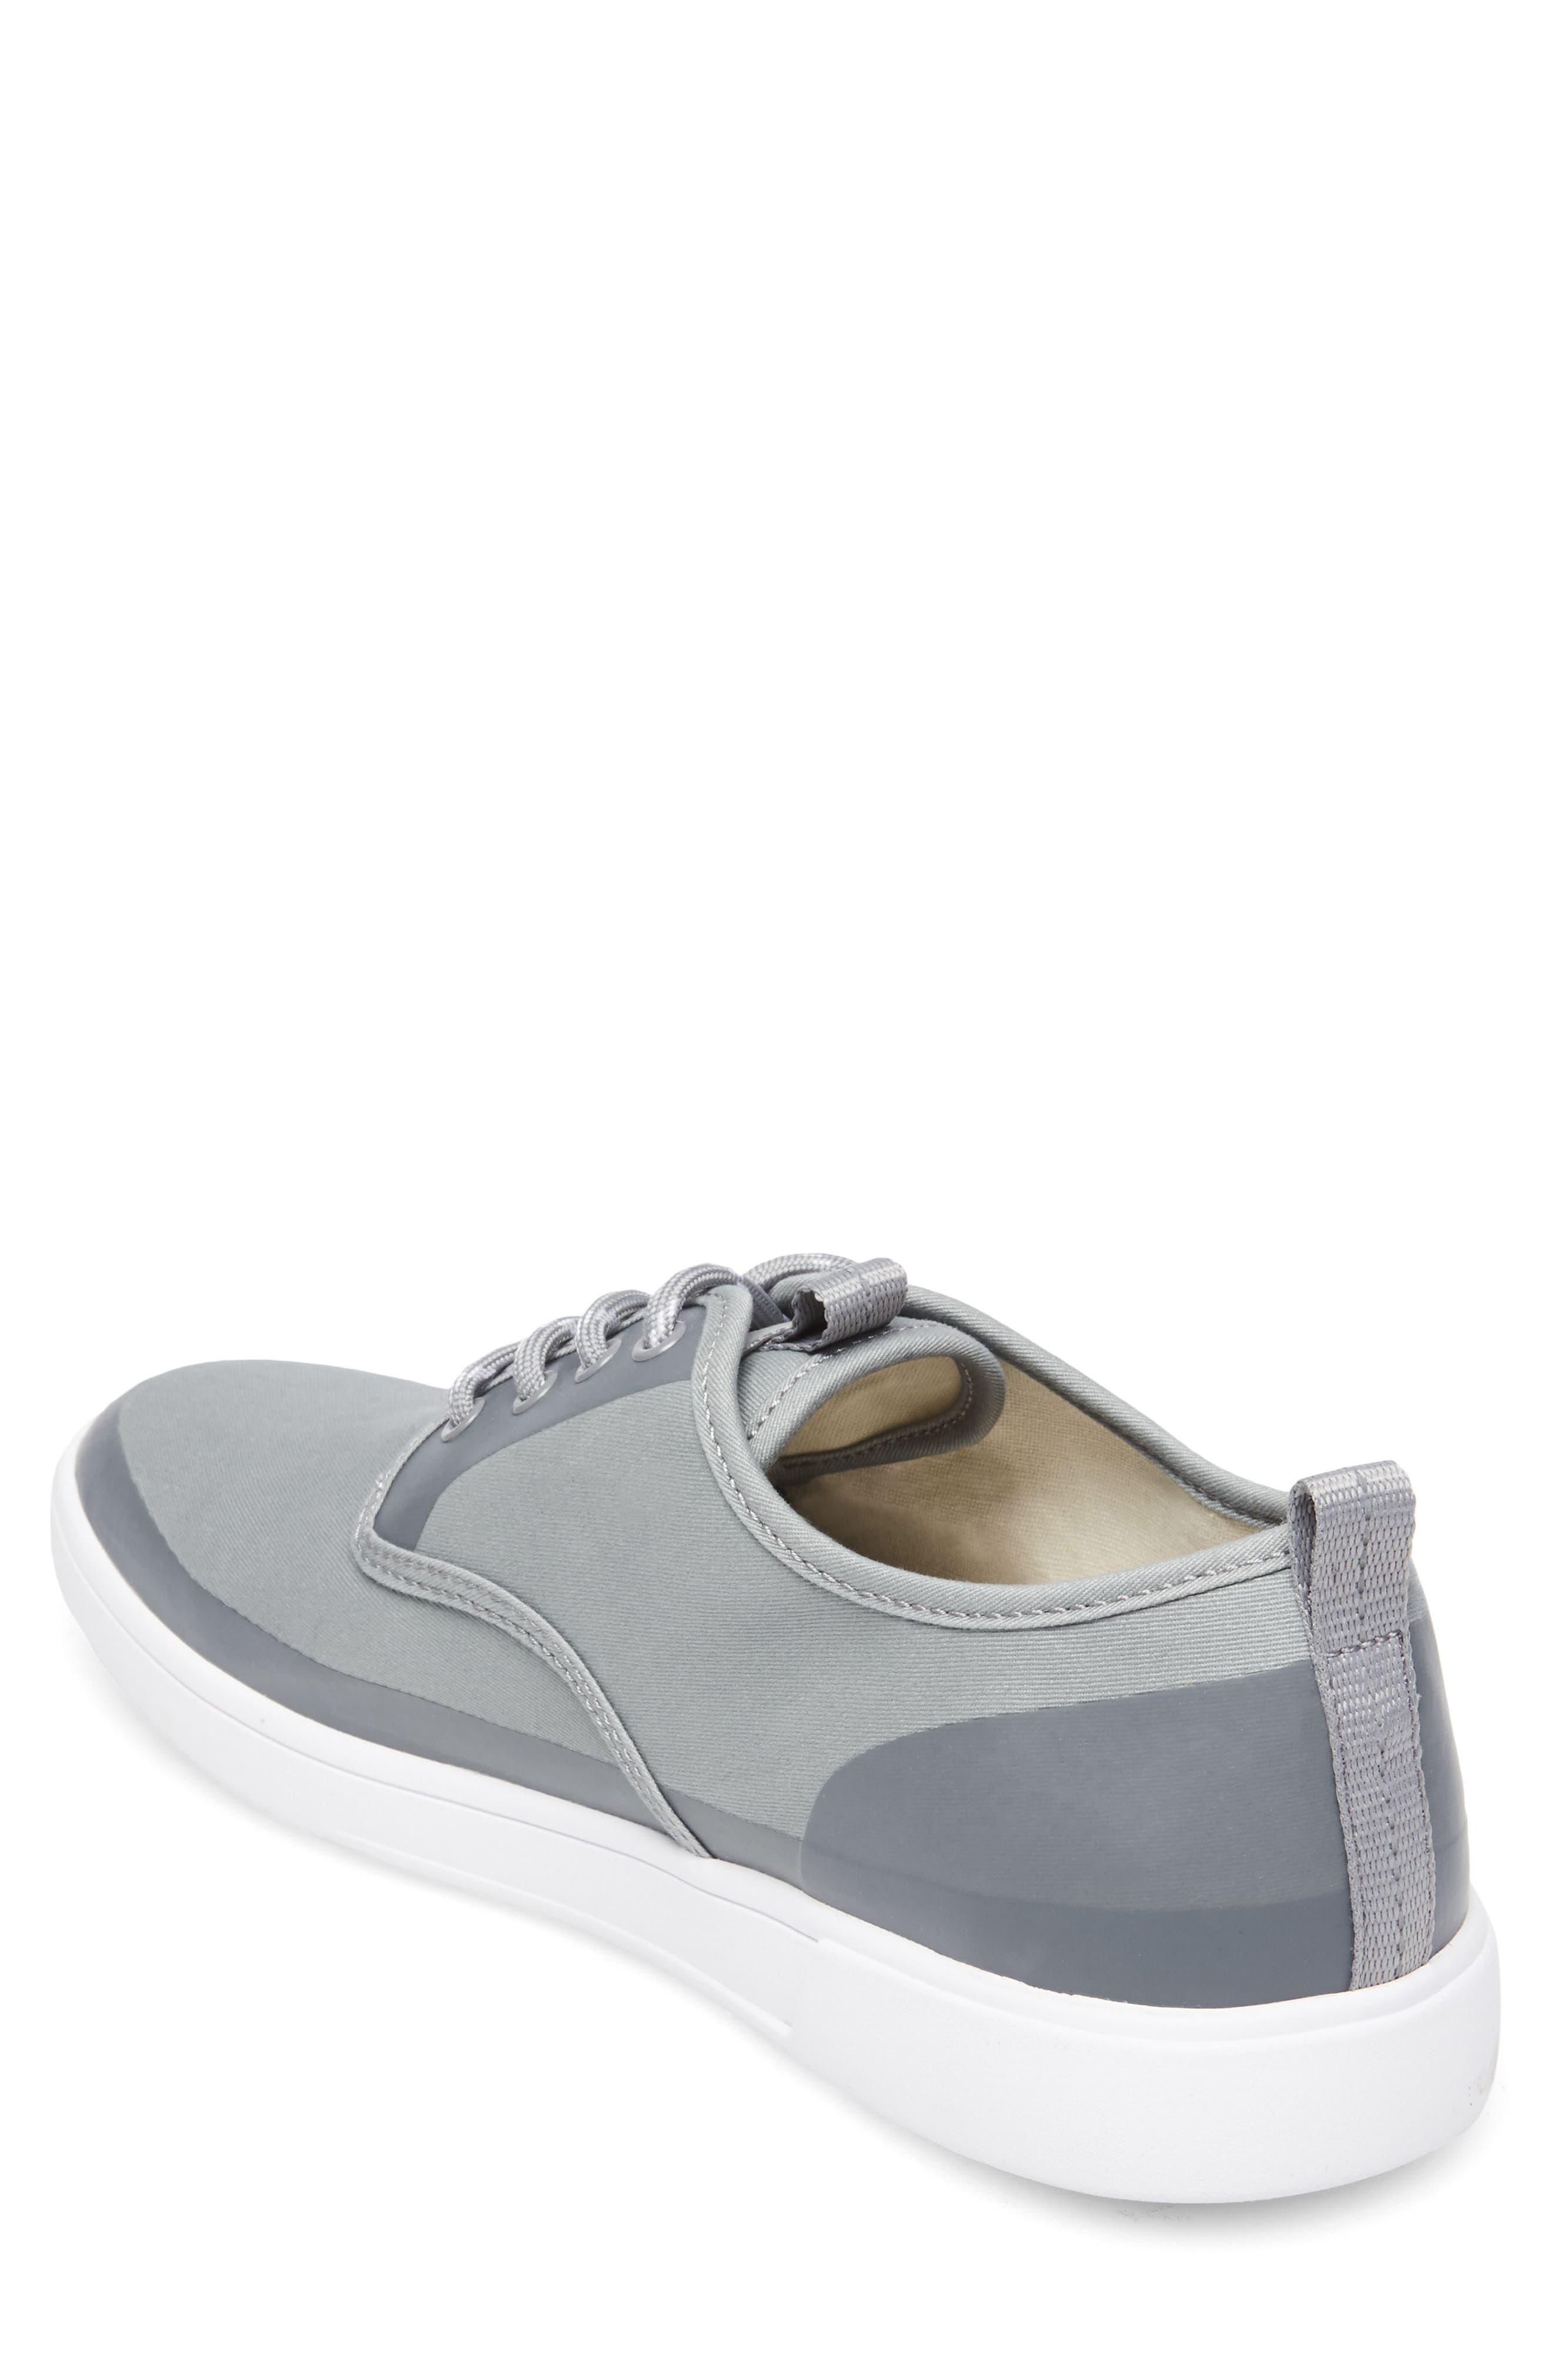 Fayette Low Top Sneaker,                             Alternate thumbnail 2, color,                             Grey Fabric